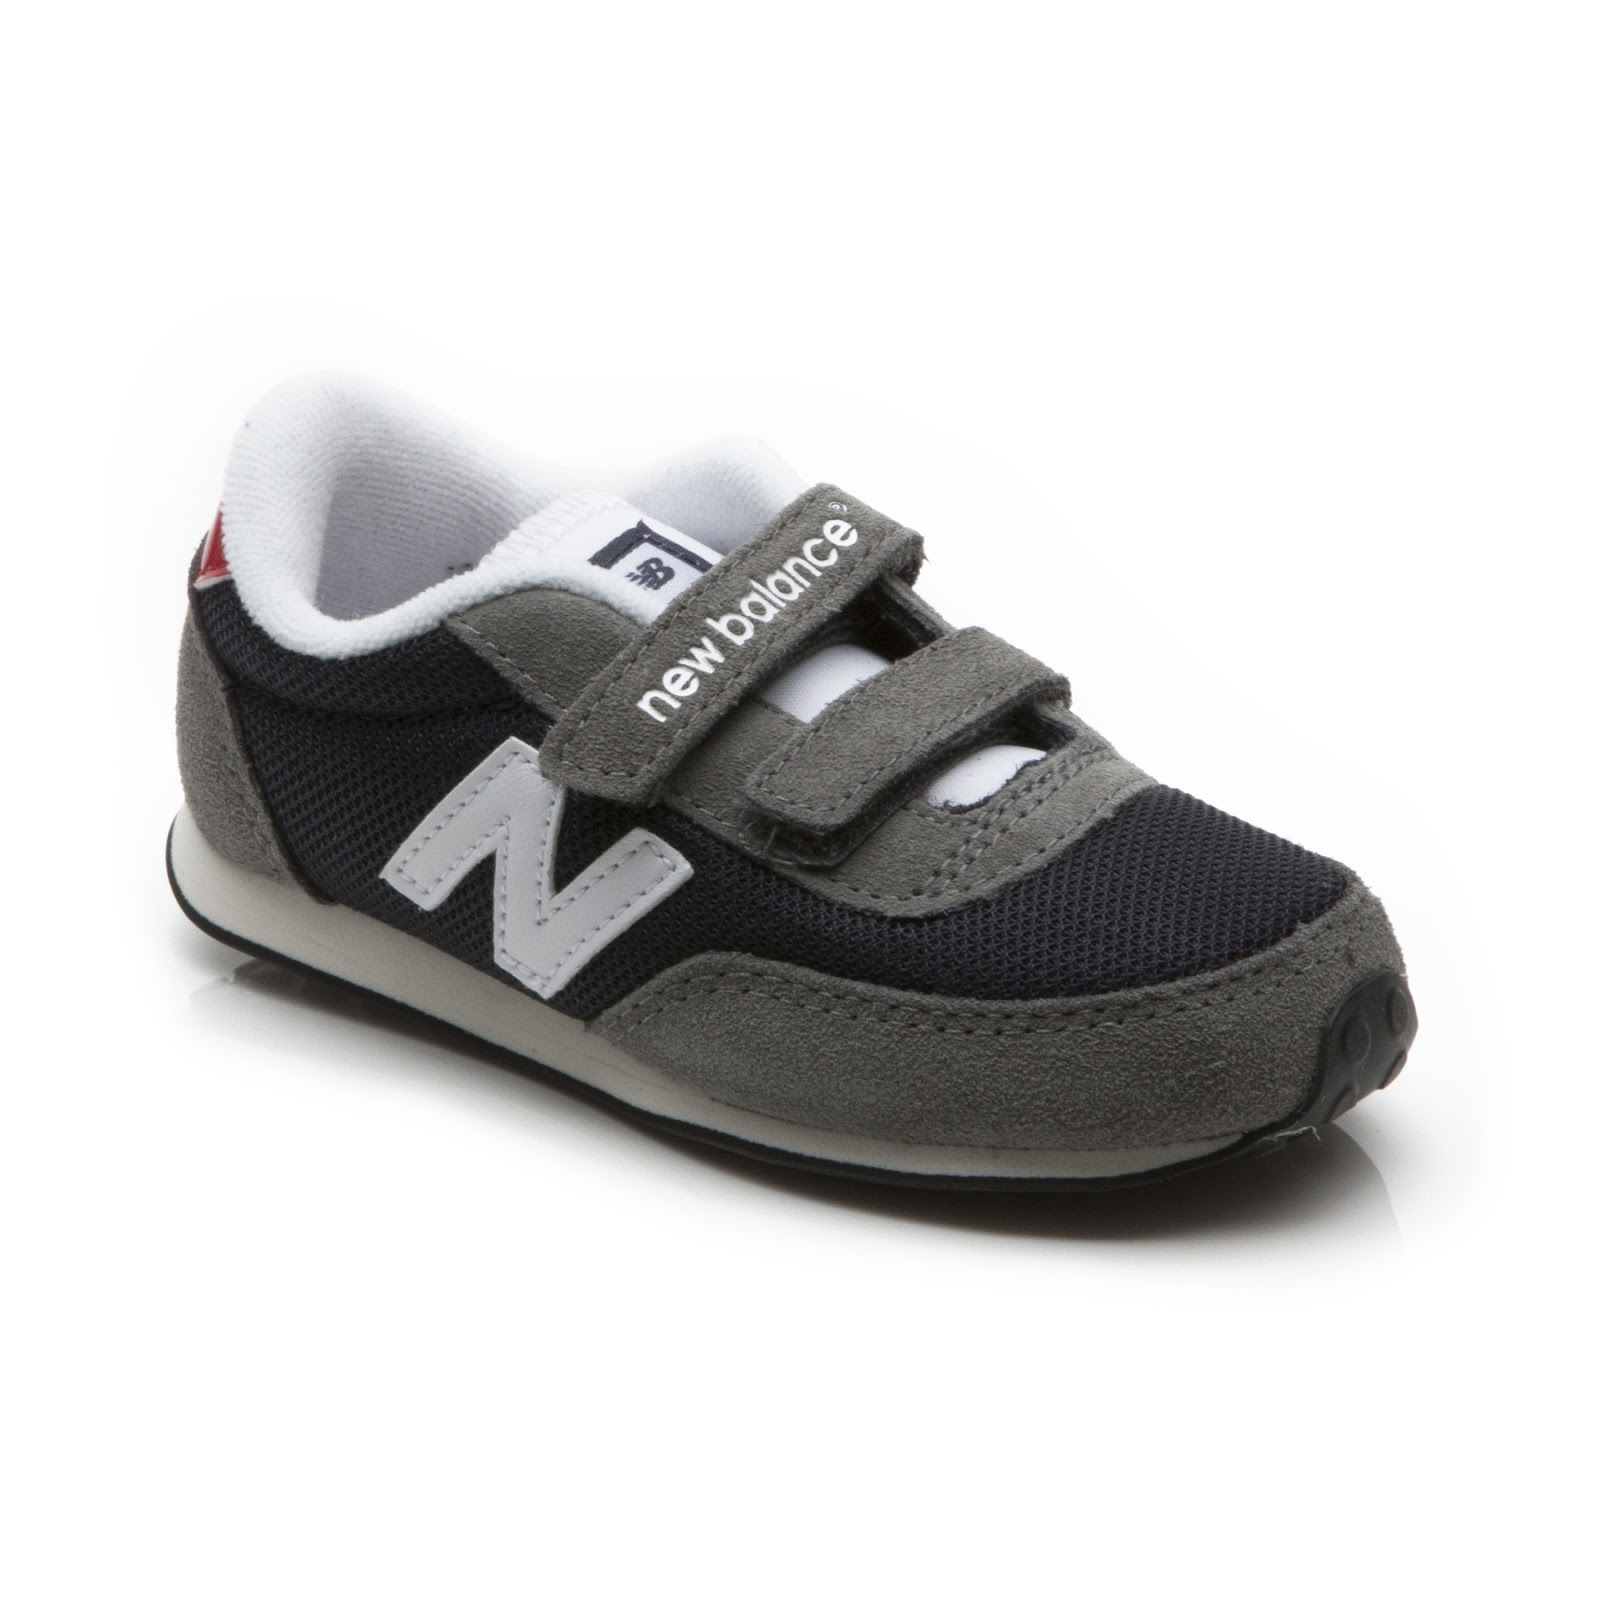 410 Classic Trainer. These retro trainers by New Balance